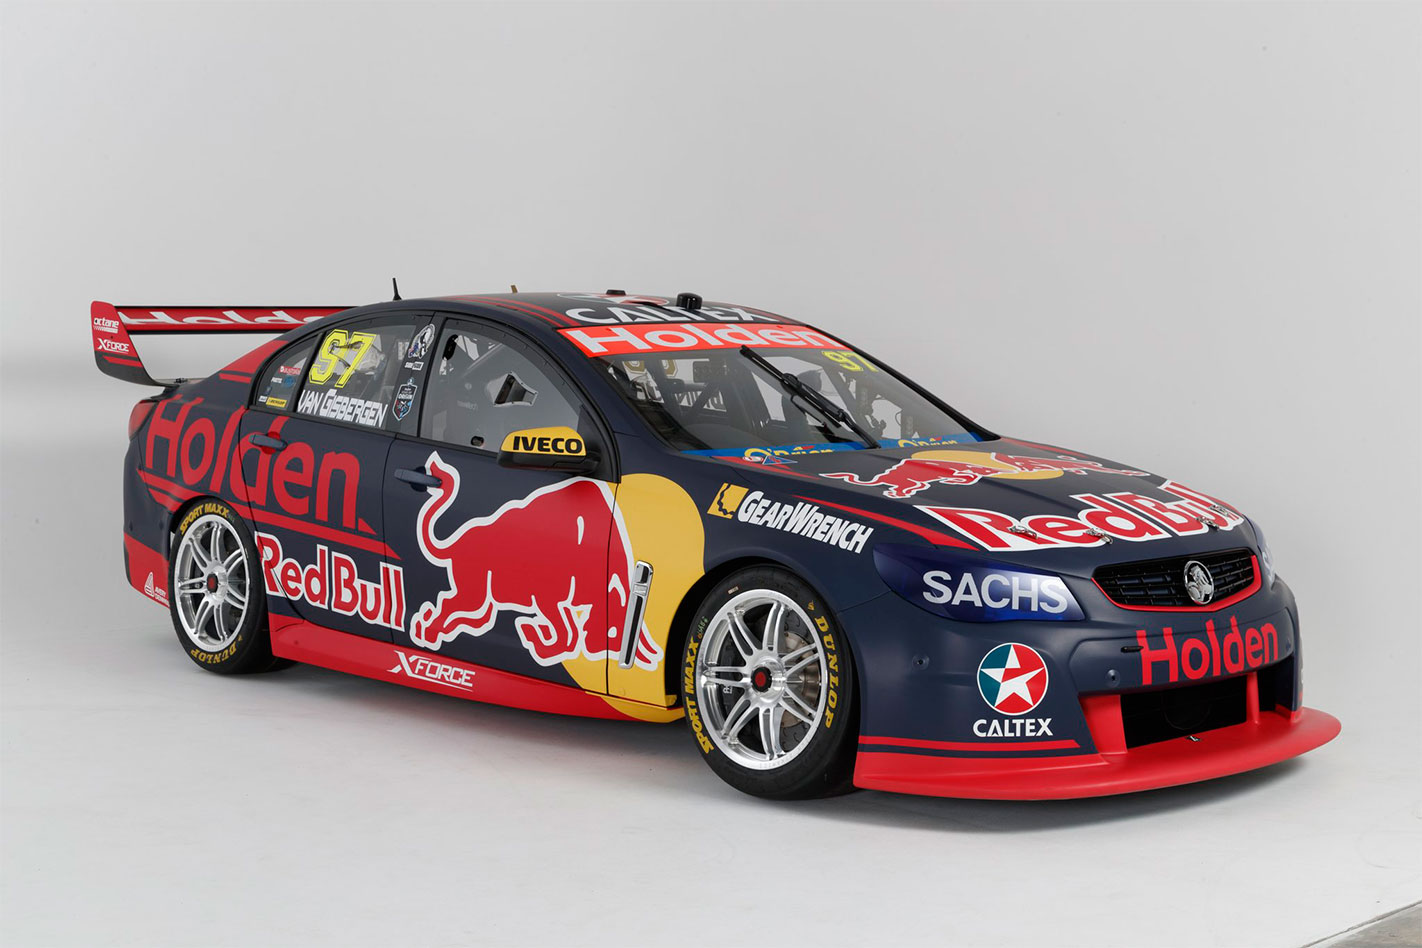 2017 Red Bull Holden Racing Supercar front